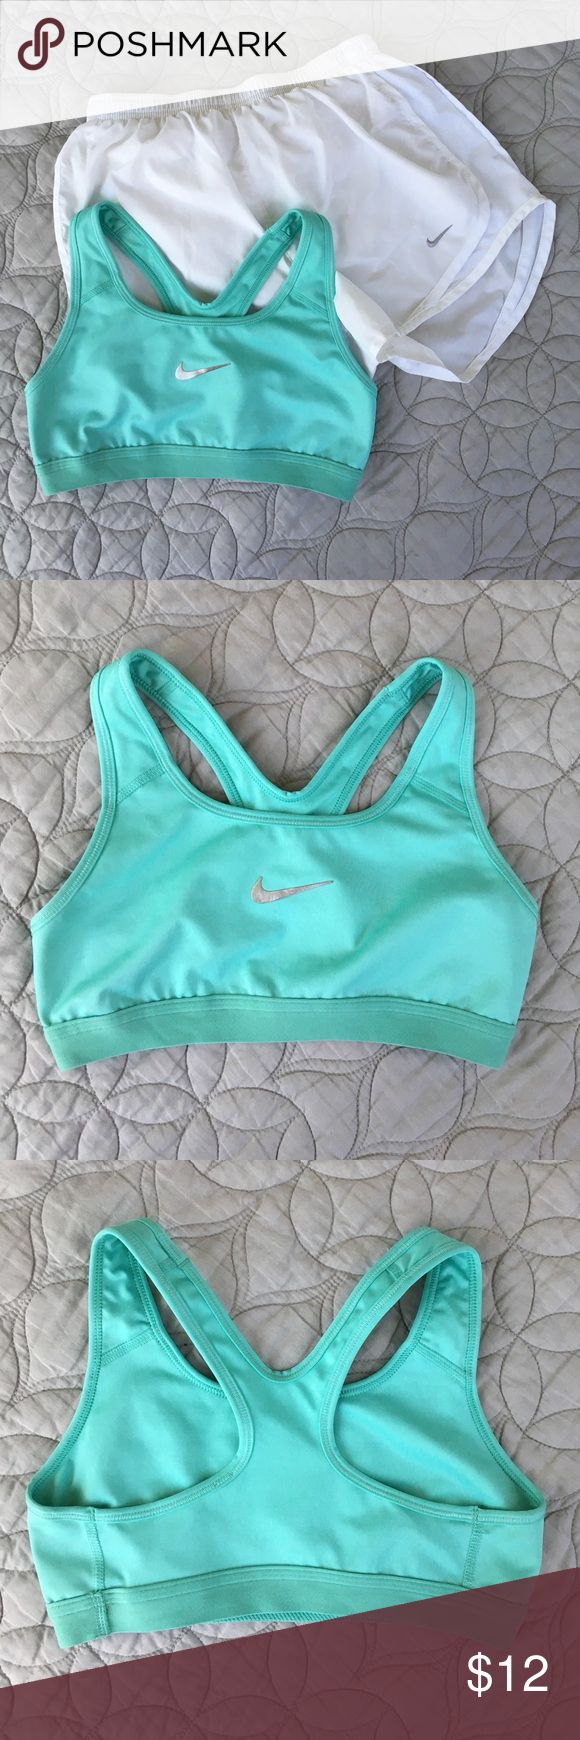 Nike sports bra ✔️ Tiffany blue Nike sports bra with silver swoosh on front. Dri-fit material. Size small. Perfect for a gym workout, running, or any cardio. Nike Intimates & Sleepwear Bras